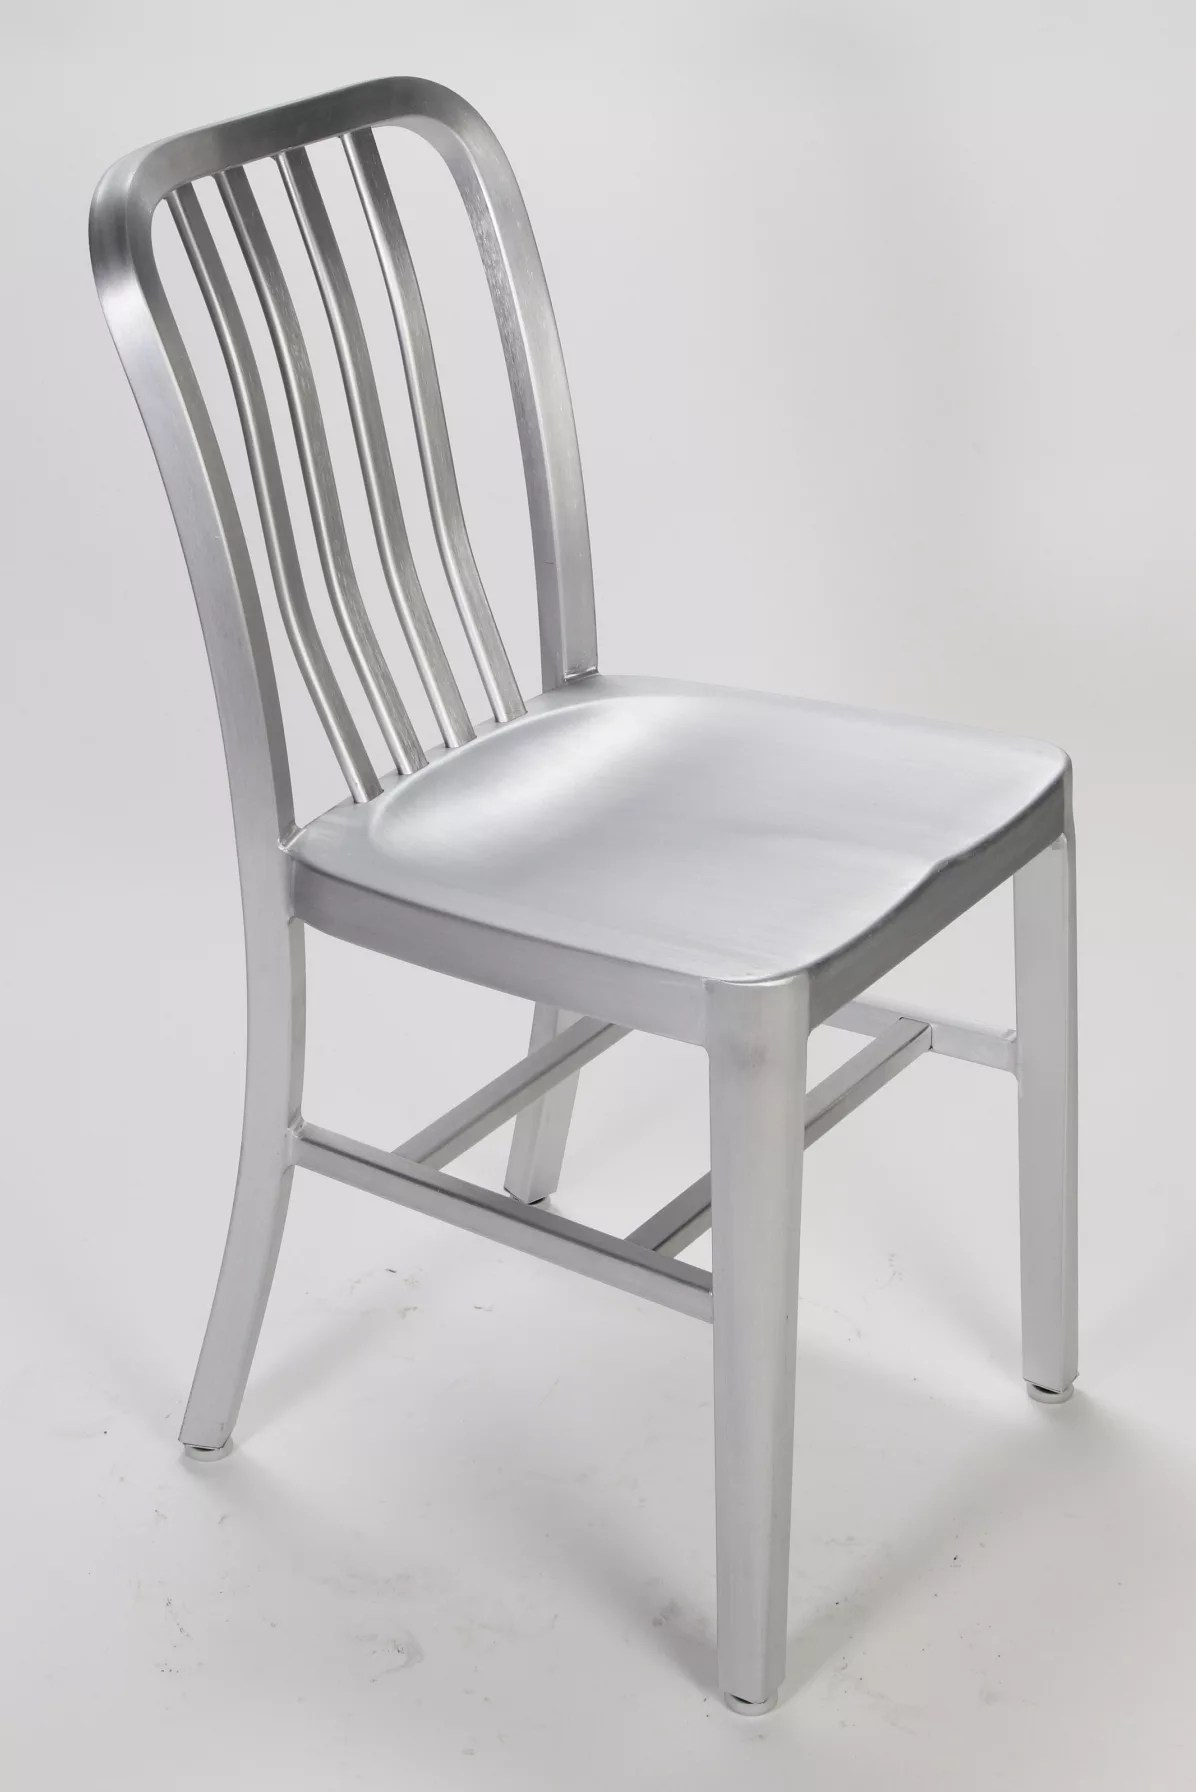 Aluminum Restaurant Chairs  12 Reasons to Choose